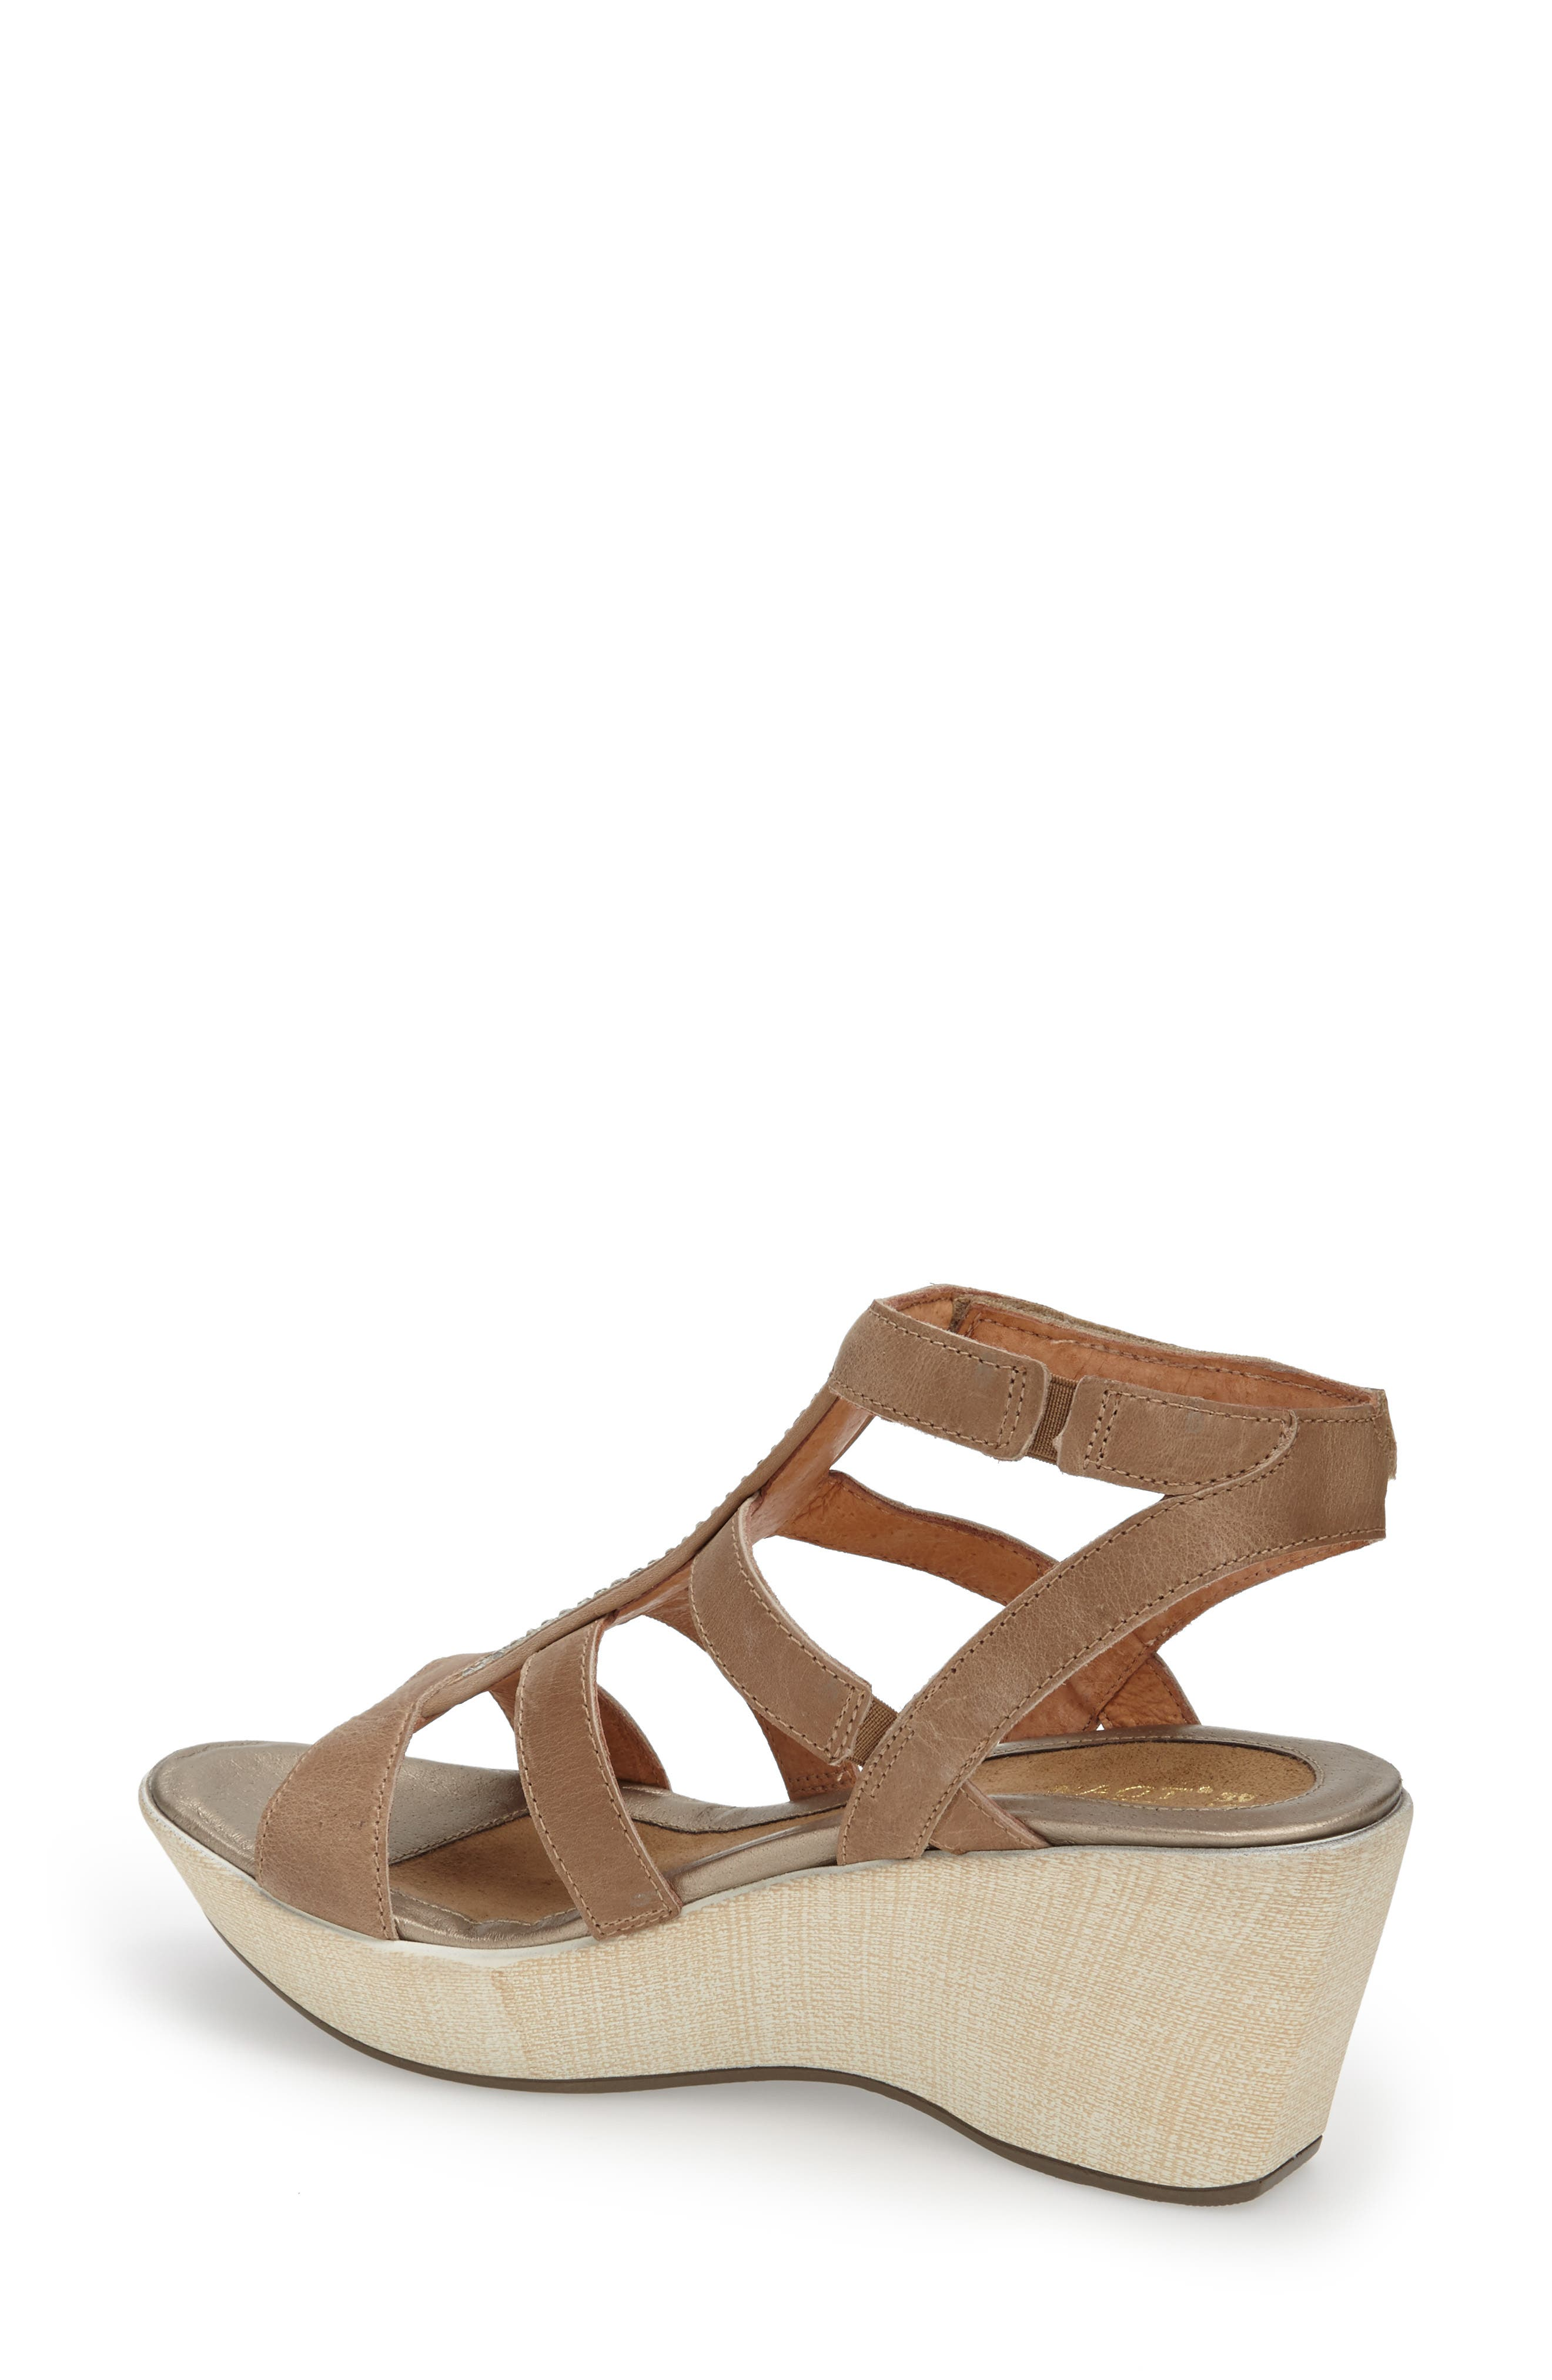 'Mystery' Platform Wedge Sandal,                             Alternate thumbnail 10, color,